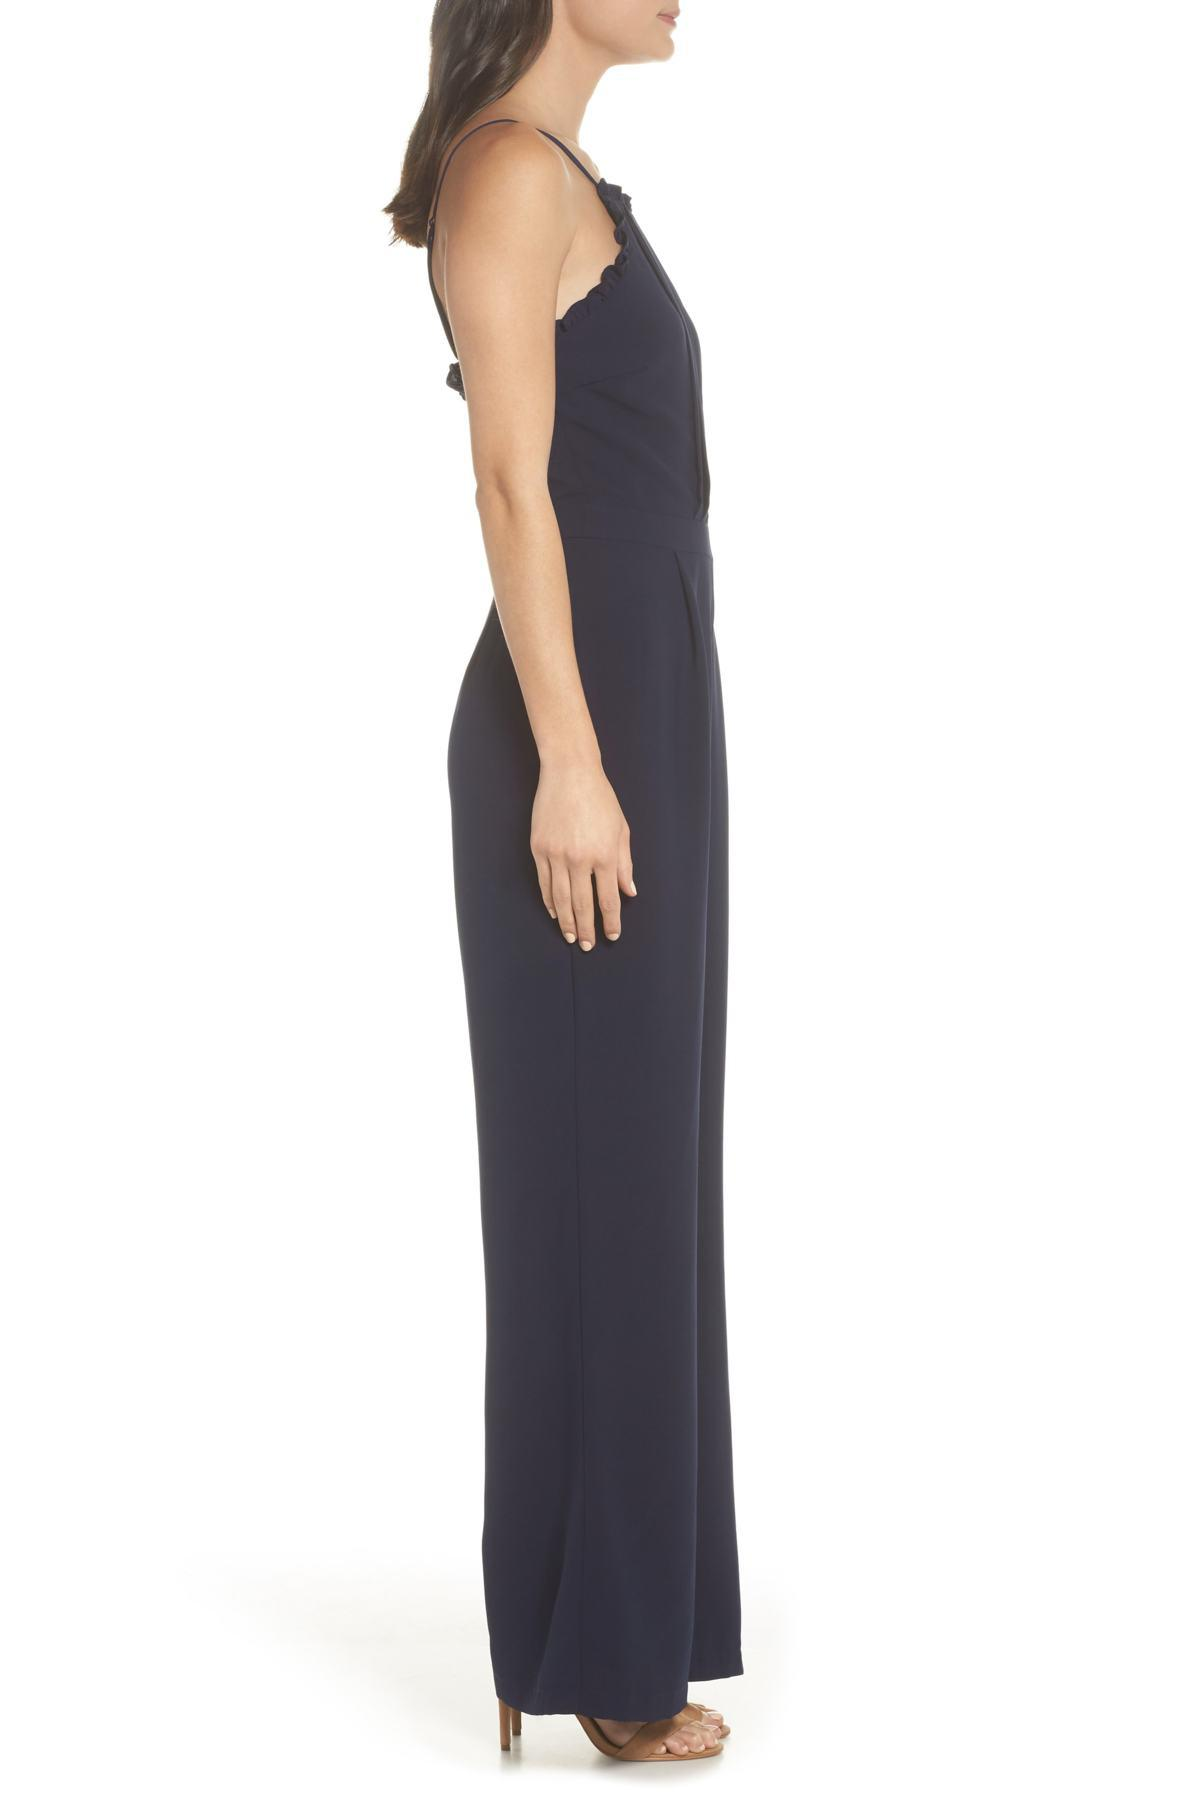 834969161be Adelyn Rae - Blue Apron Style Jumpsuit - Lyst. View fullscreen